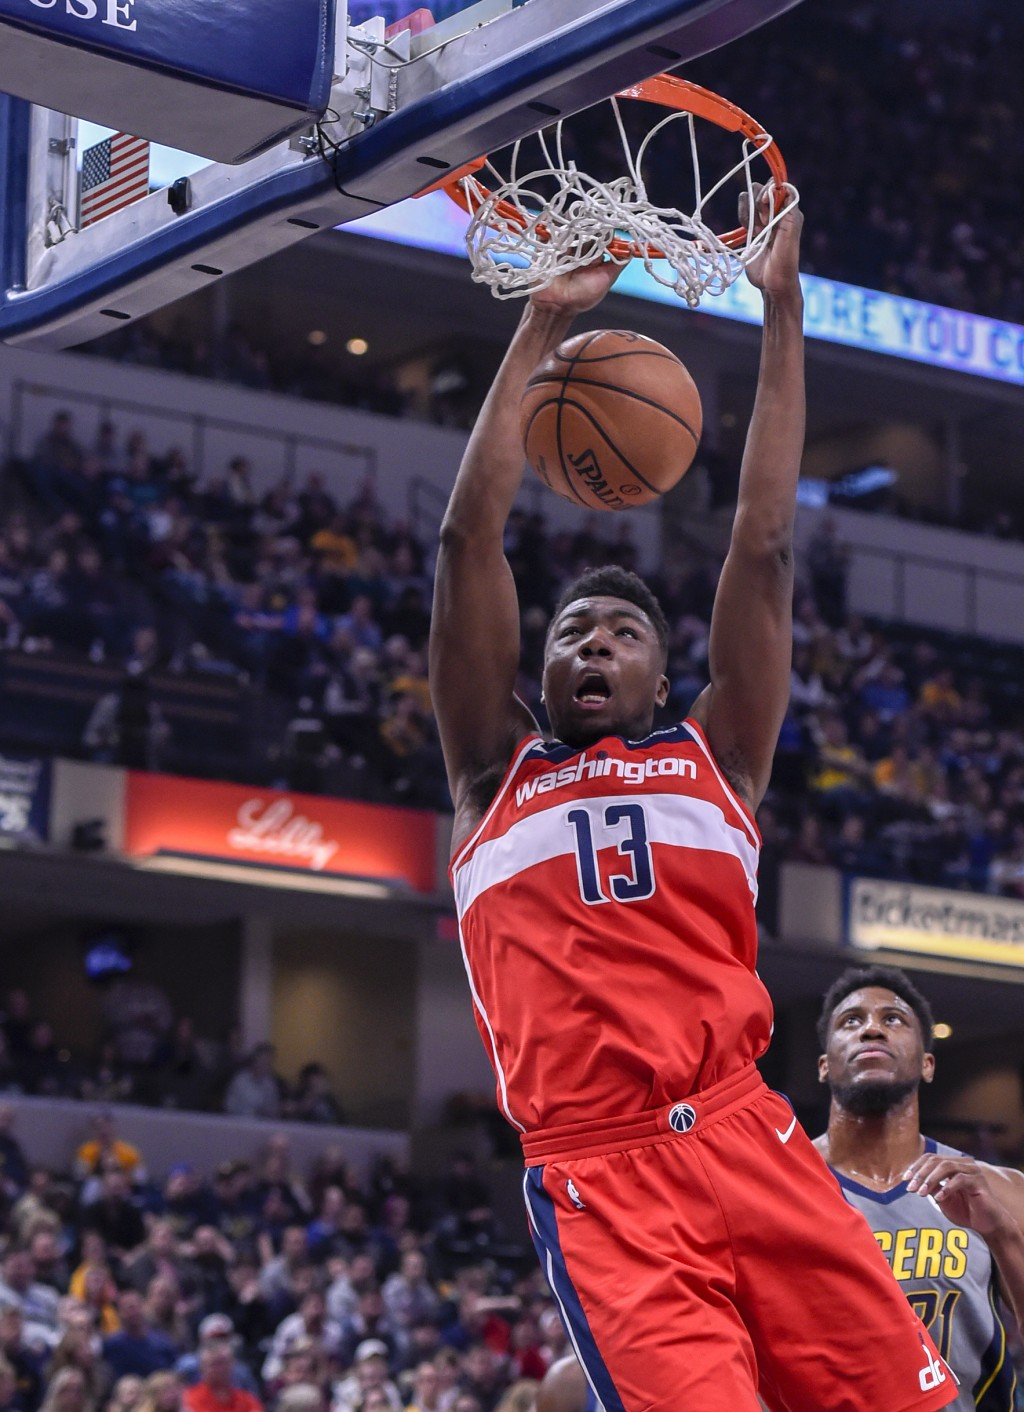 Washington Wizards center Thomas Bryant (13) slam-dunks the ball during an NBA basketball game against the Indiana Pacers, Sunday, Dec. 23, 2018, in I